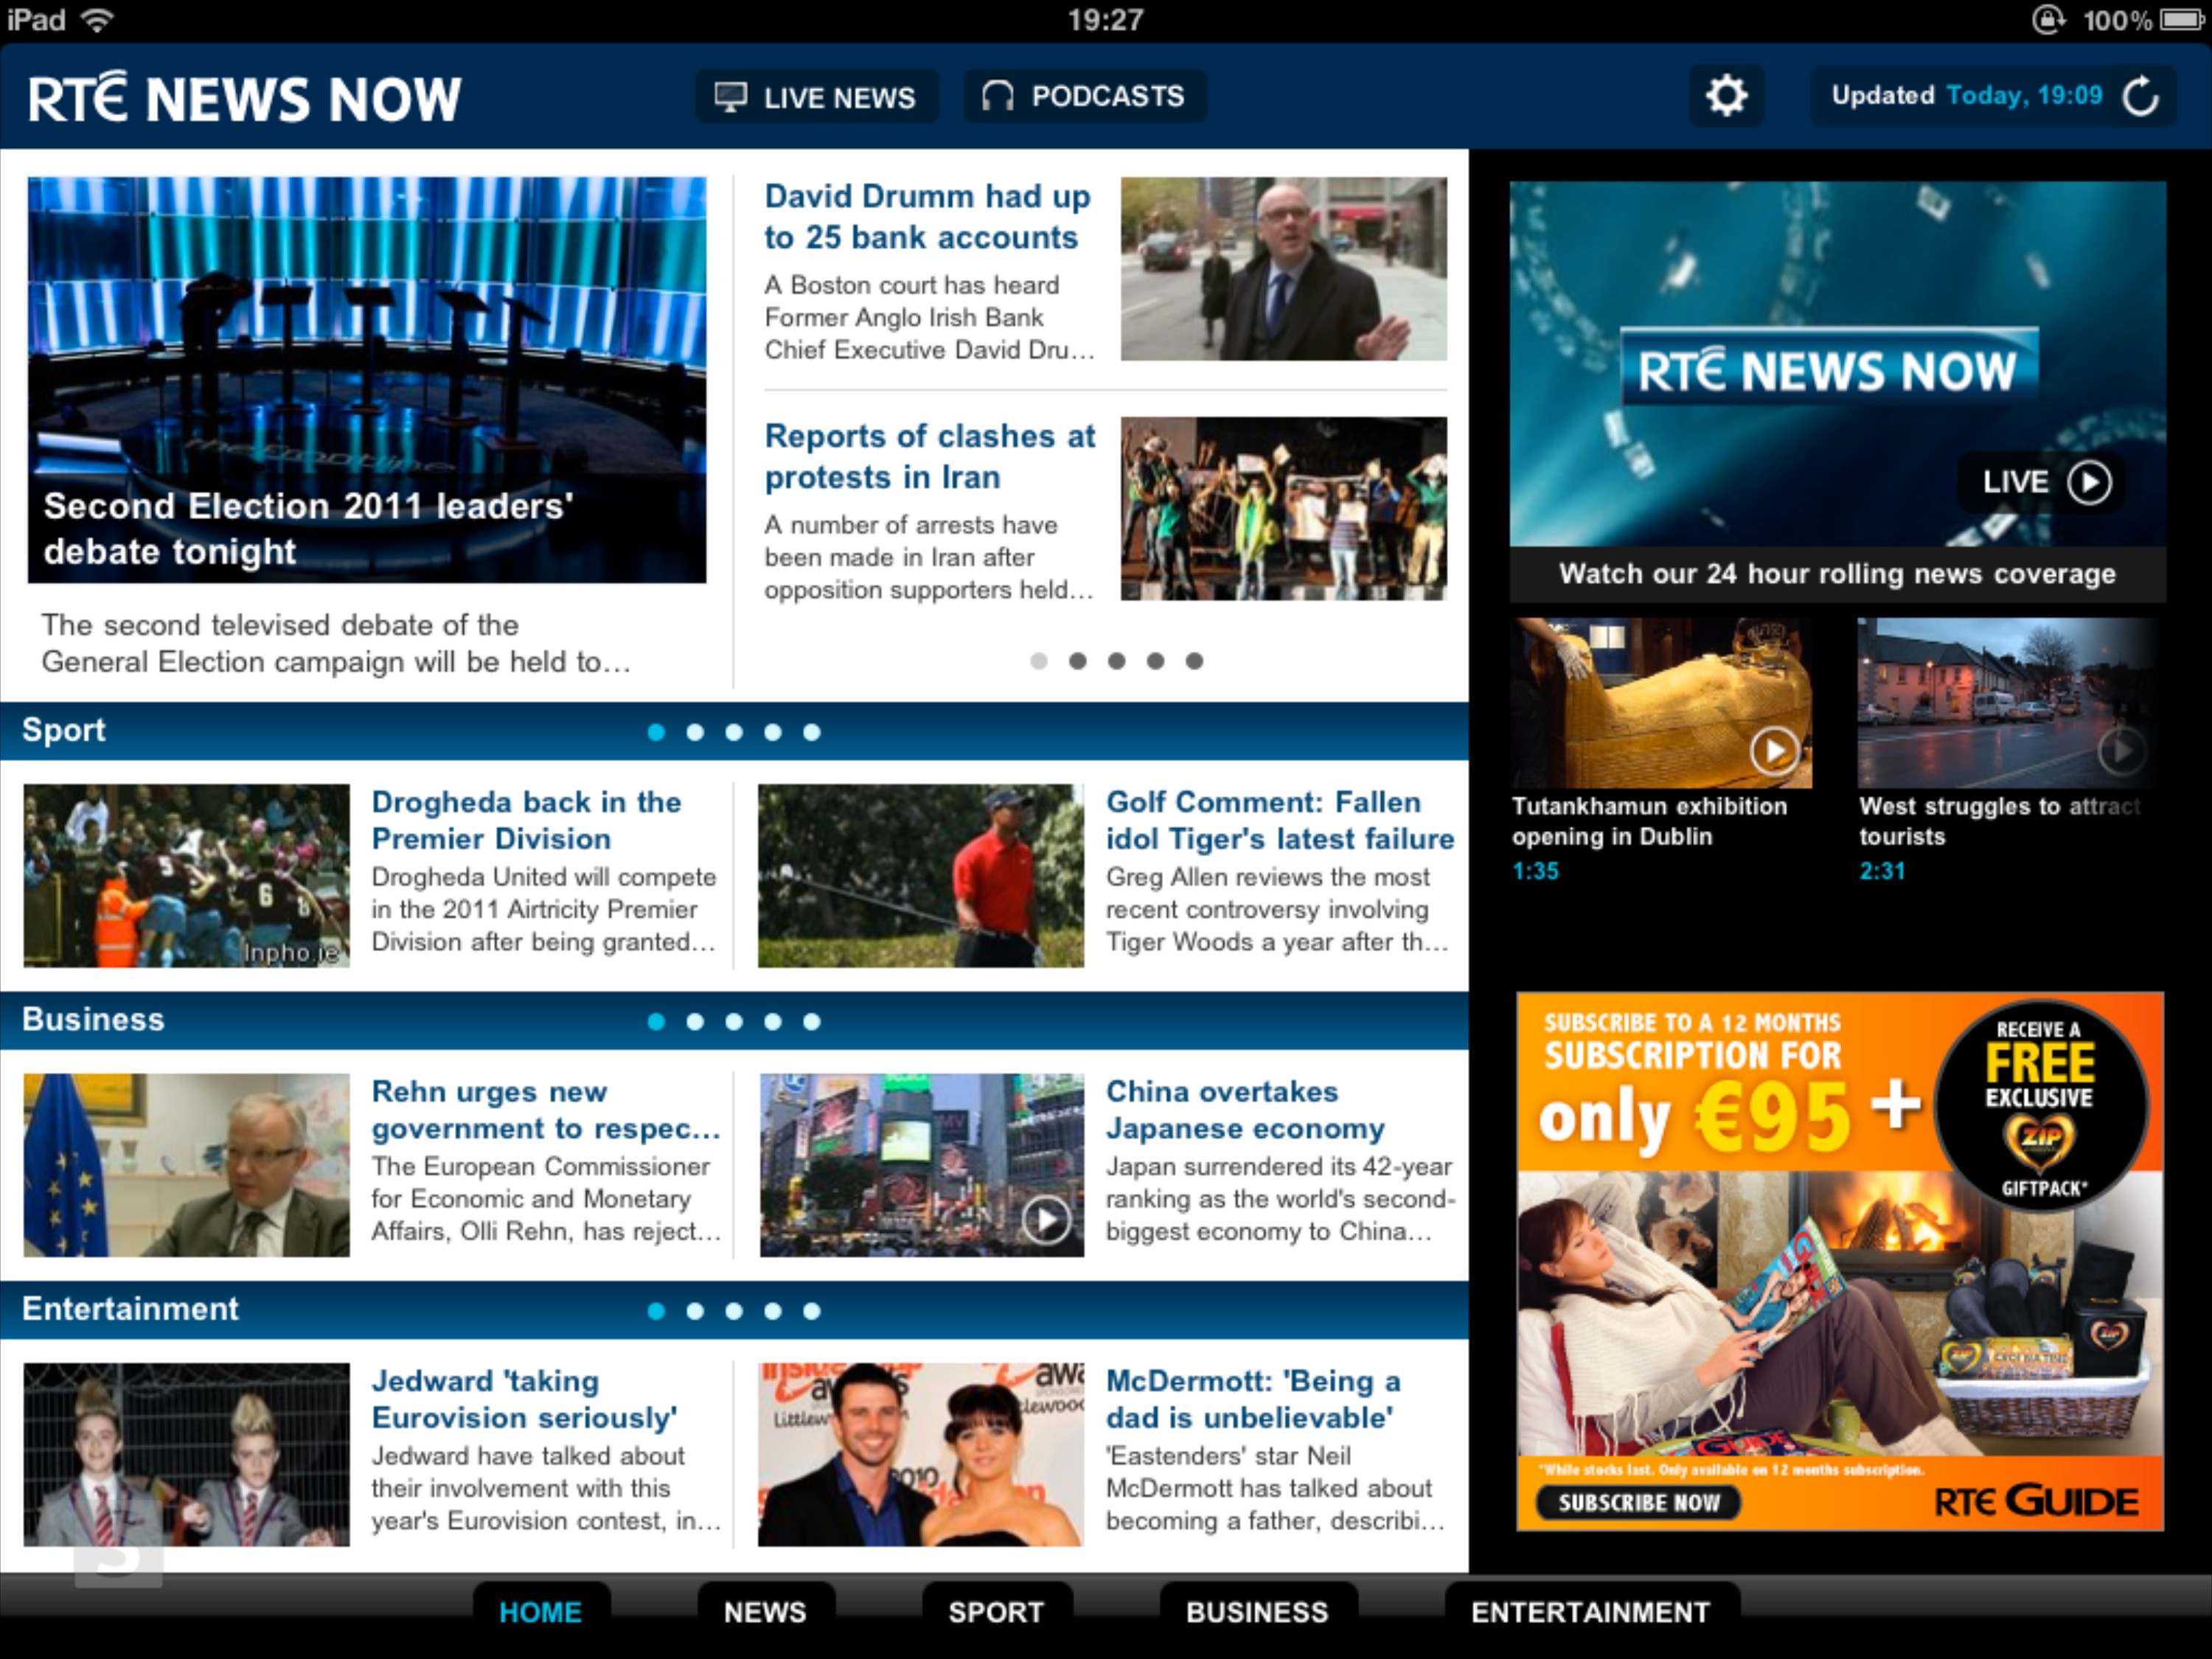 RTÉ News Now app for iPad home screen